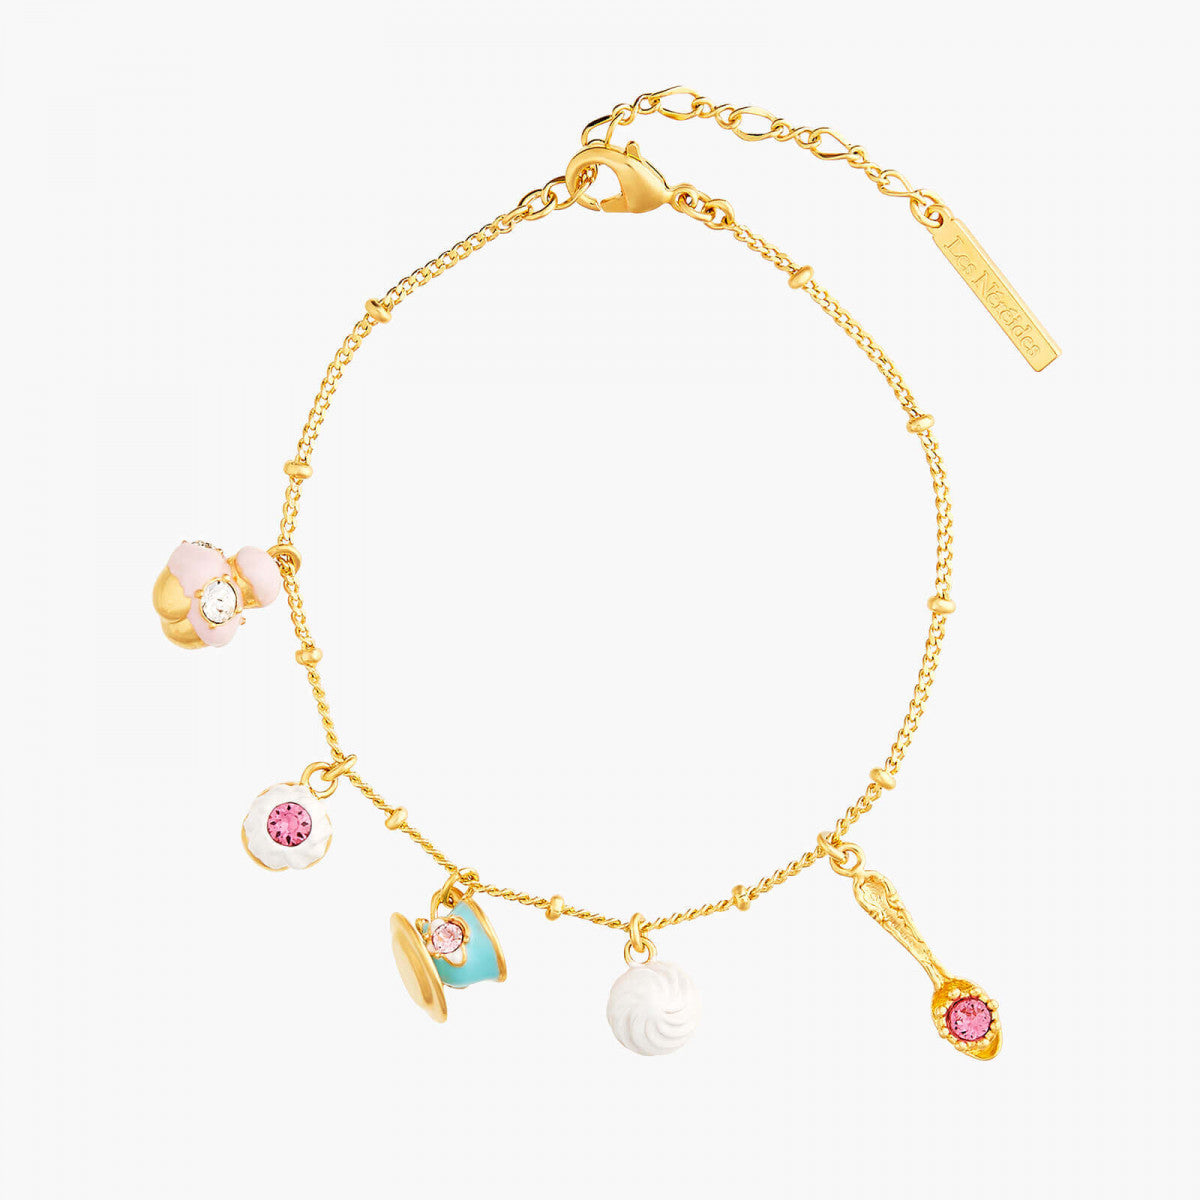 Patisserie French Delicacies charm bracelet